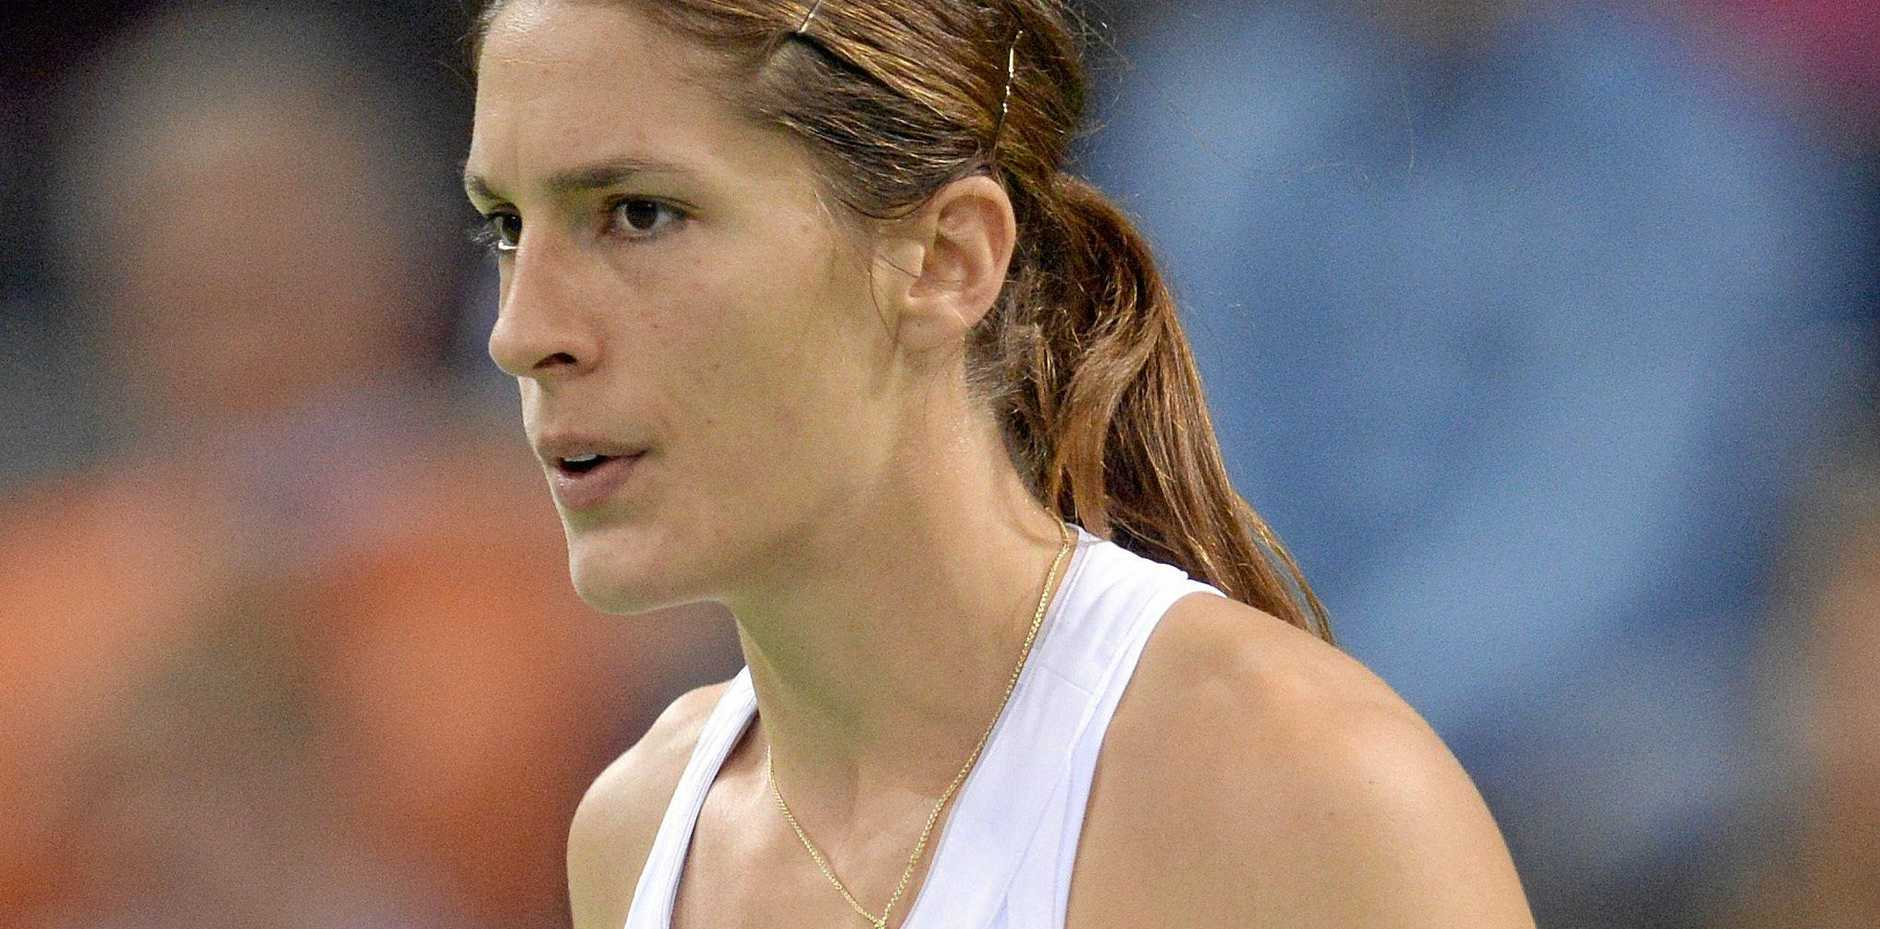 Germany's Andrea Petkovic was upset after American officials played the wrong national anthem.